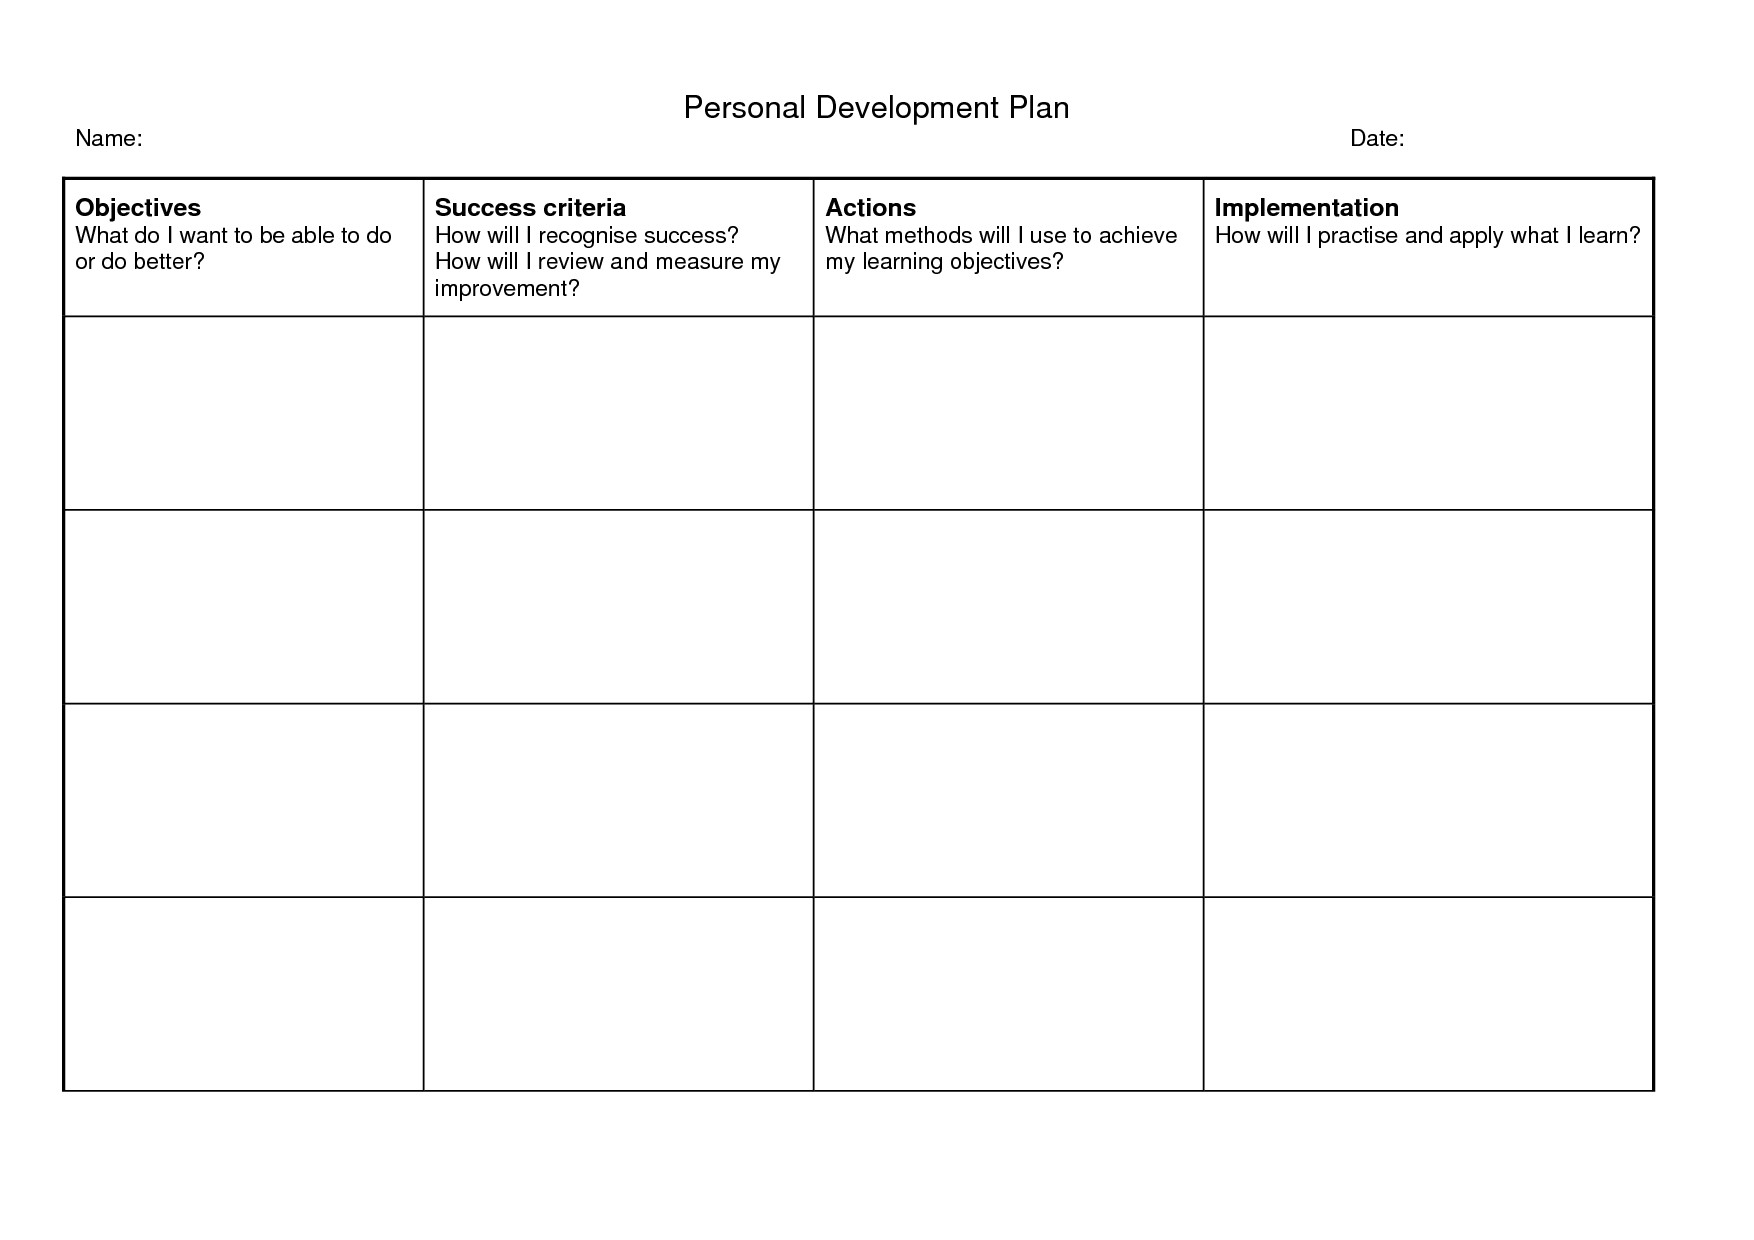 Personal Improvement Plan Template 6 Free Personal Development Plan Templates Excel Pdf formats